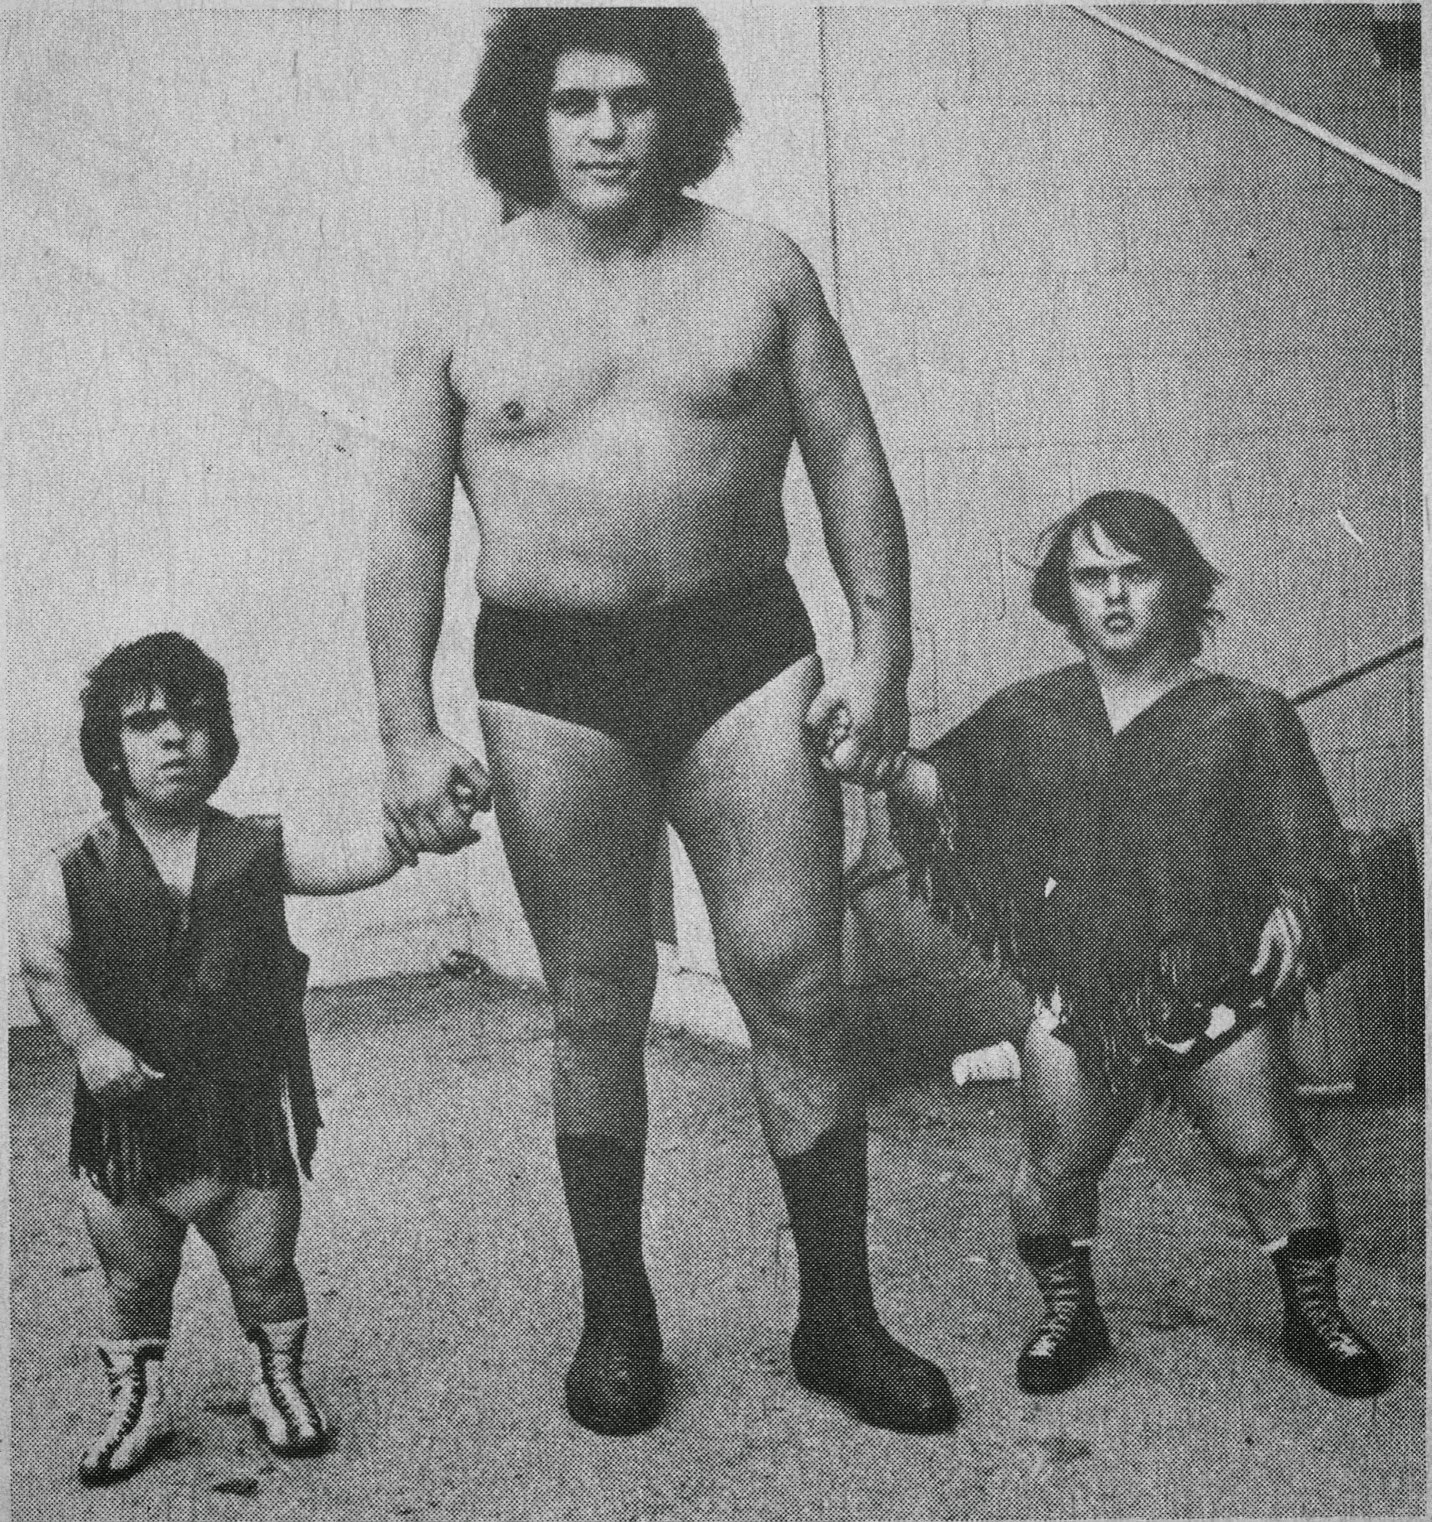 Andre midget+wrestlers Tom Thumb